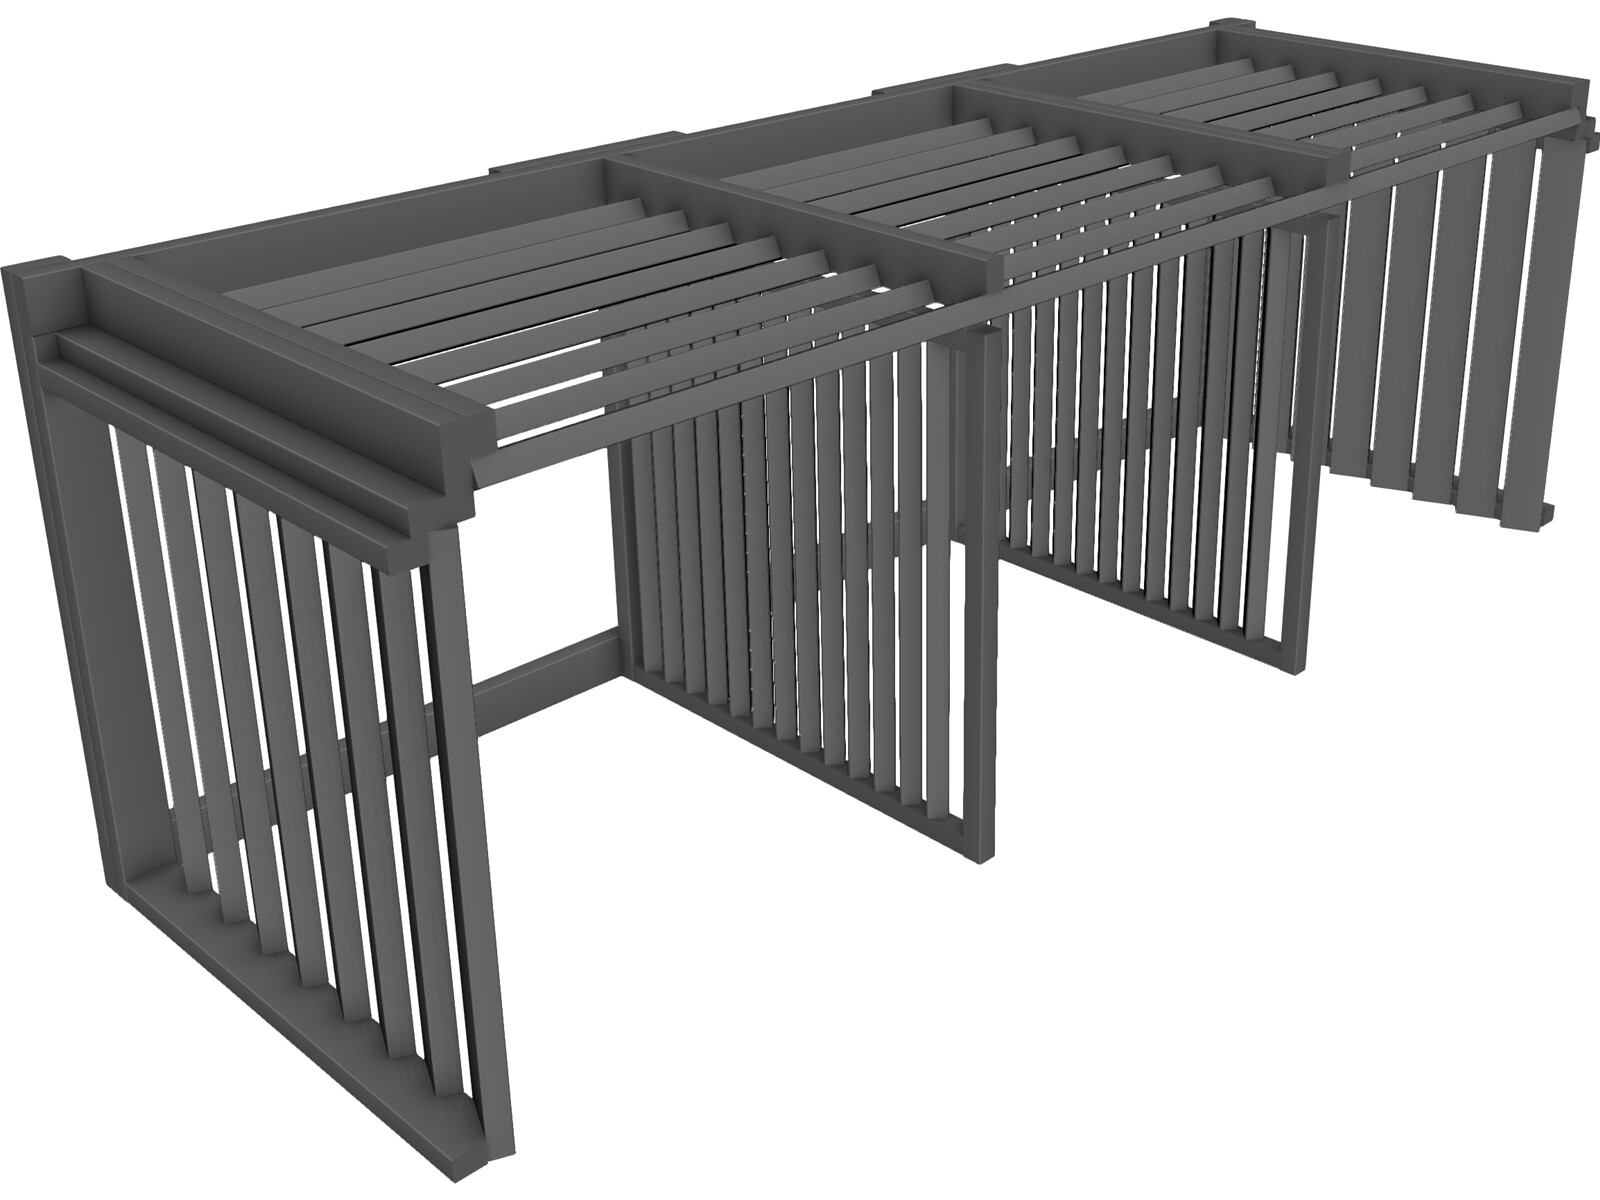 3 Compartment Composting BinFree